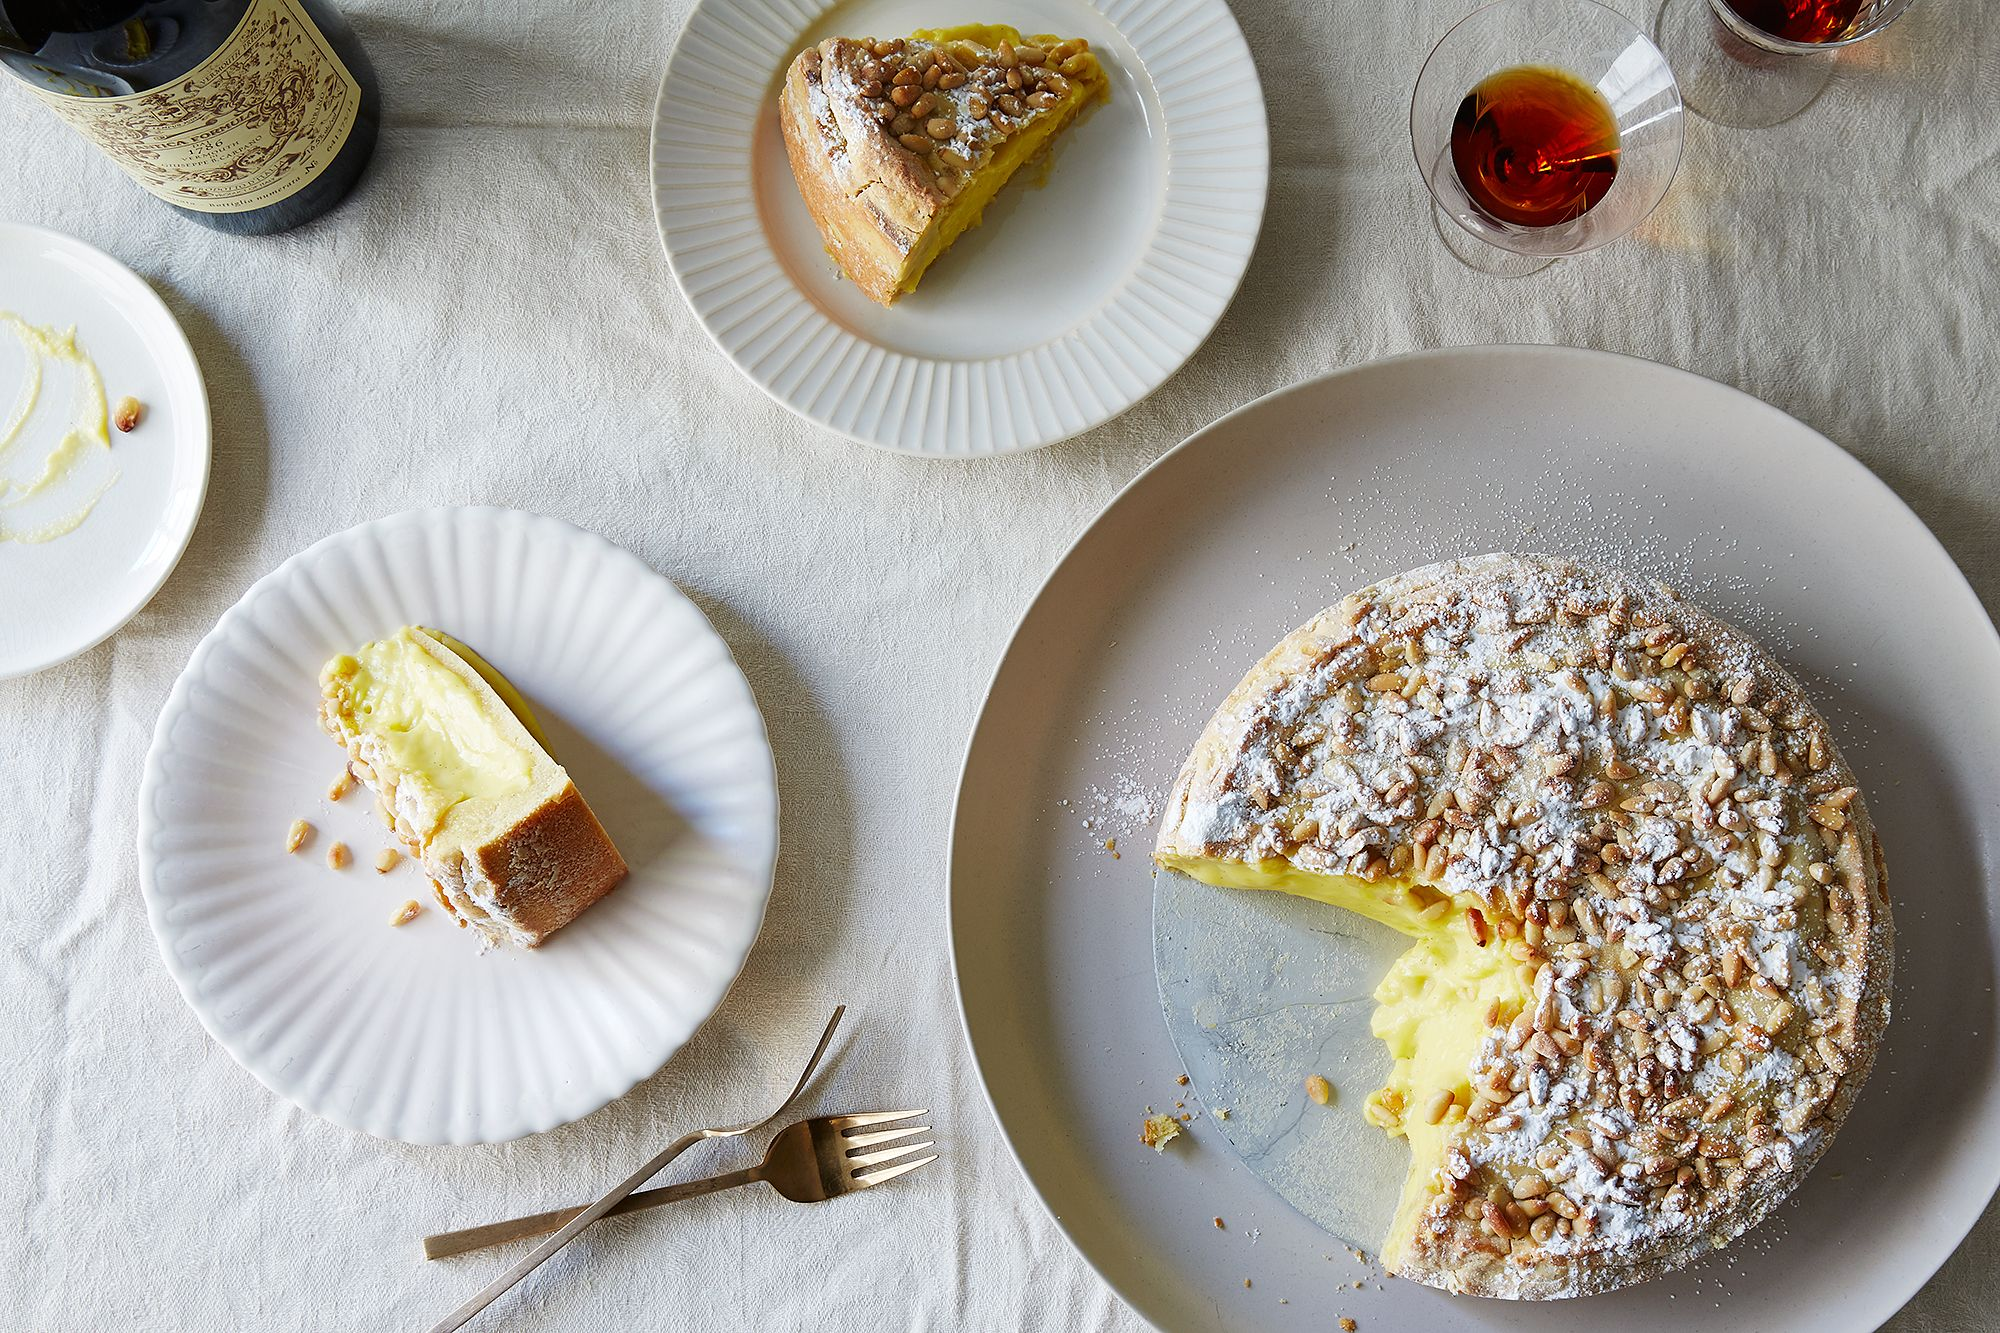 A flawless italian dessert just like your nonna may or may not ave food52 food community recipes kitchen home products and cooking contests forumfinder Images